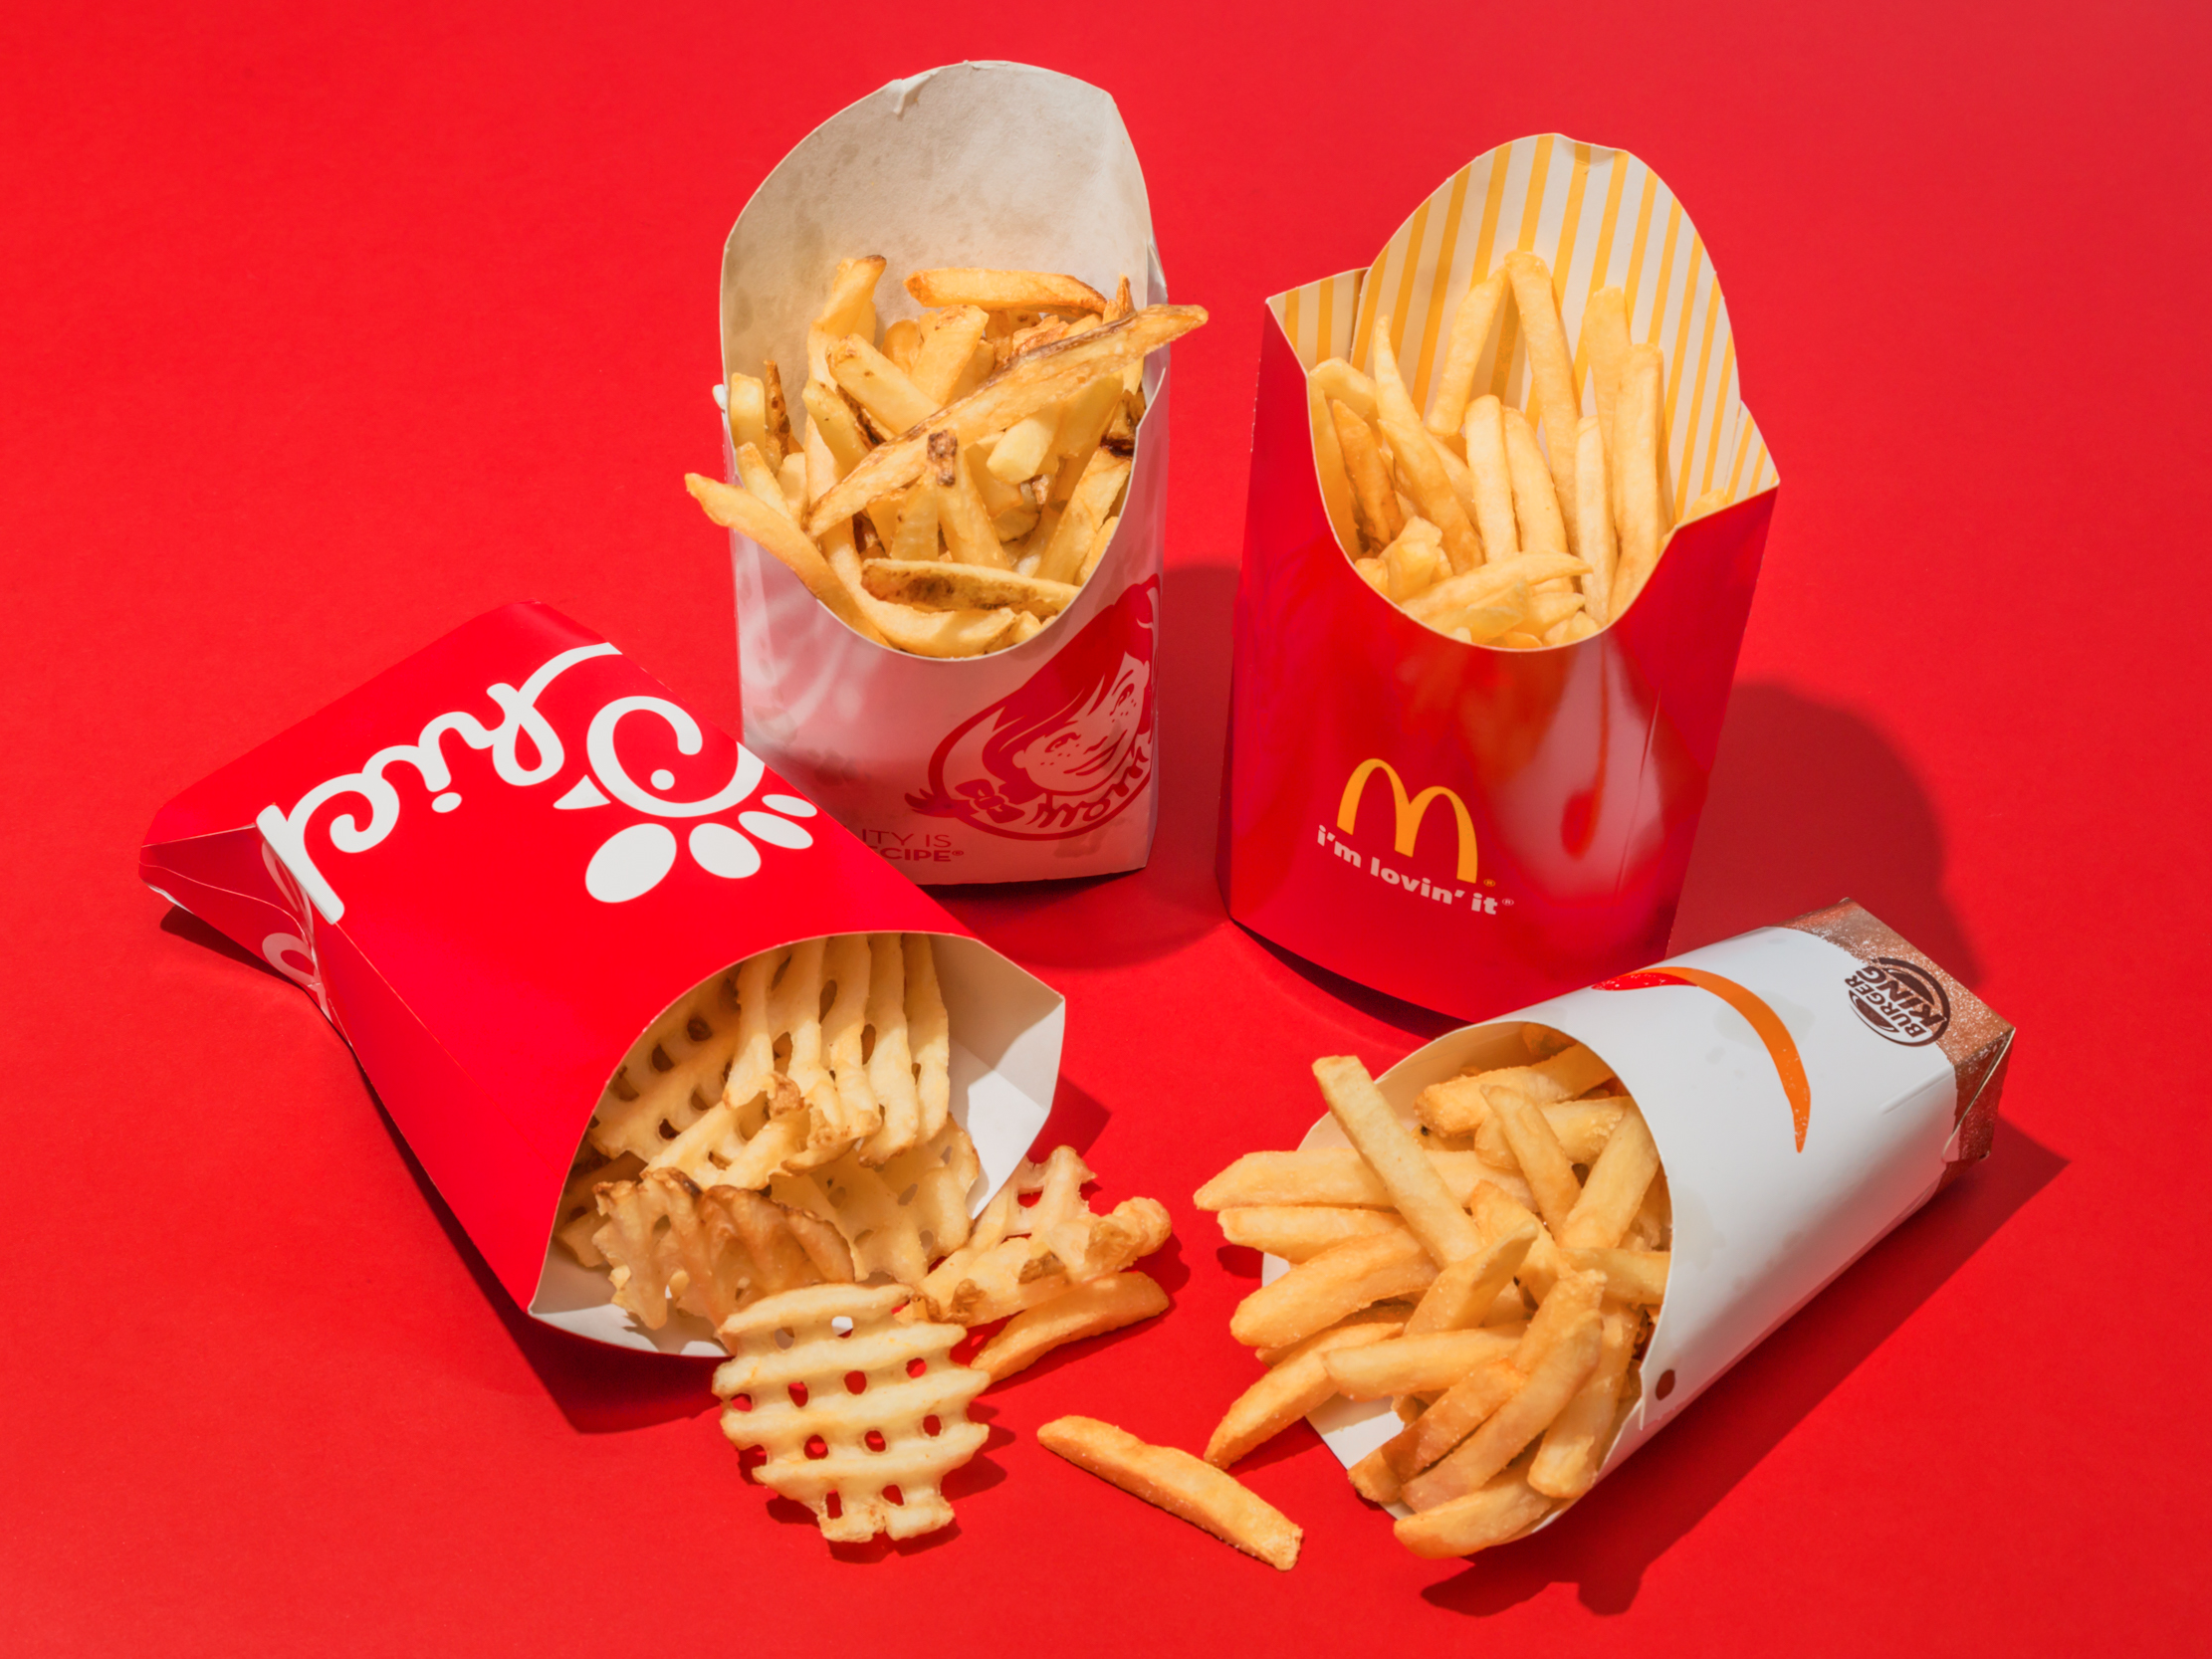 competition fast food The fast food battle is once again bringing good news for many frugal customers burger king is slashing its price for chicken nuggets the burger chain announced earlier that it will be bringing back its previous deal which is the 10-piece chicken nuggets for $149.